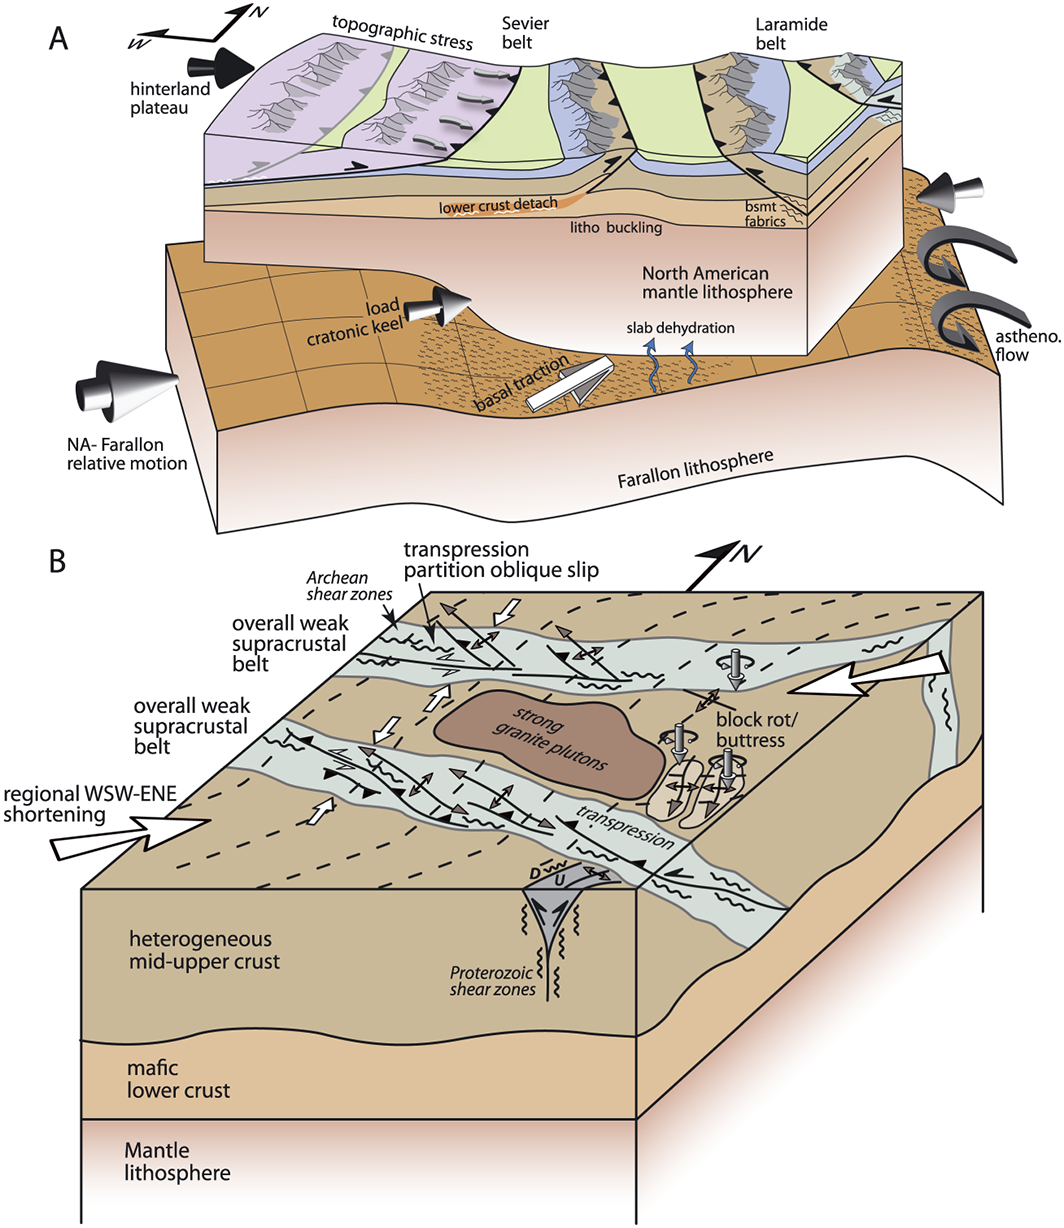 Tectonic evolution of a laramide transverse structural zone tectonic evolution of a laramide transverse structural zone sweetwater arch wyoming a schematic lithospheric block diagram illustrates potential stress ccuart Images